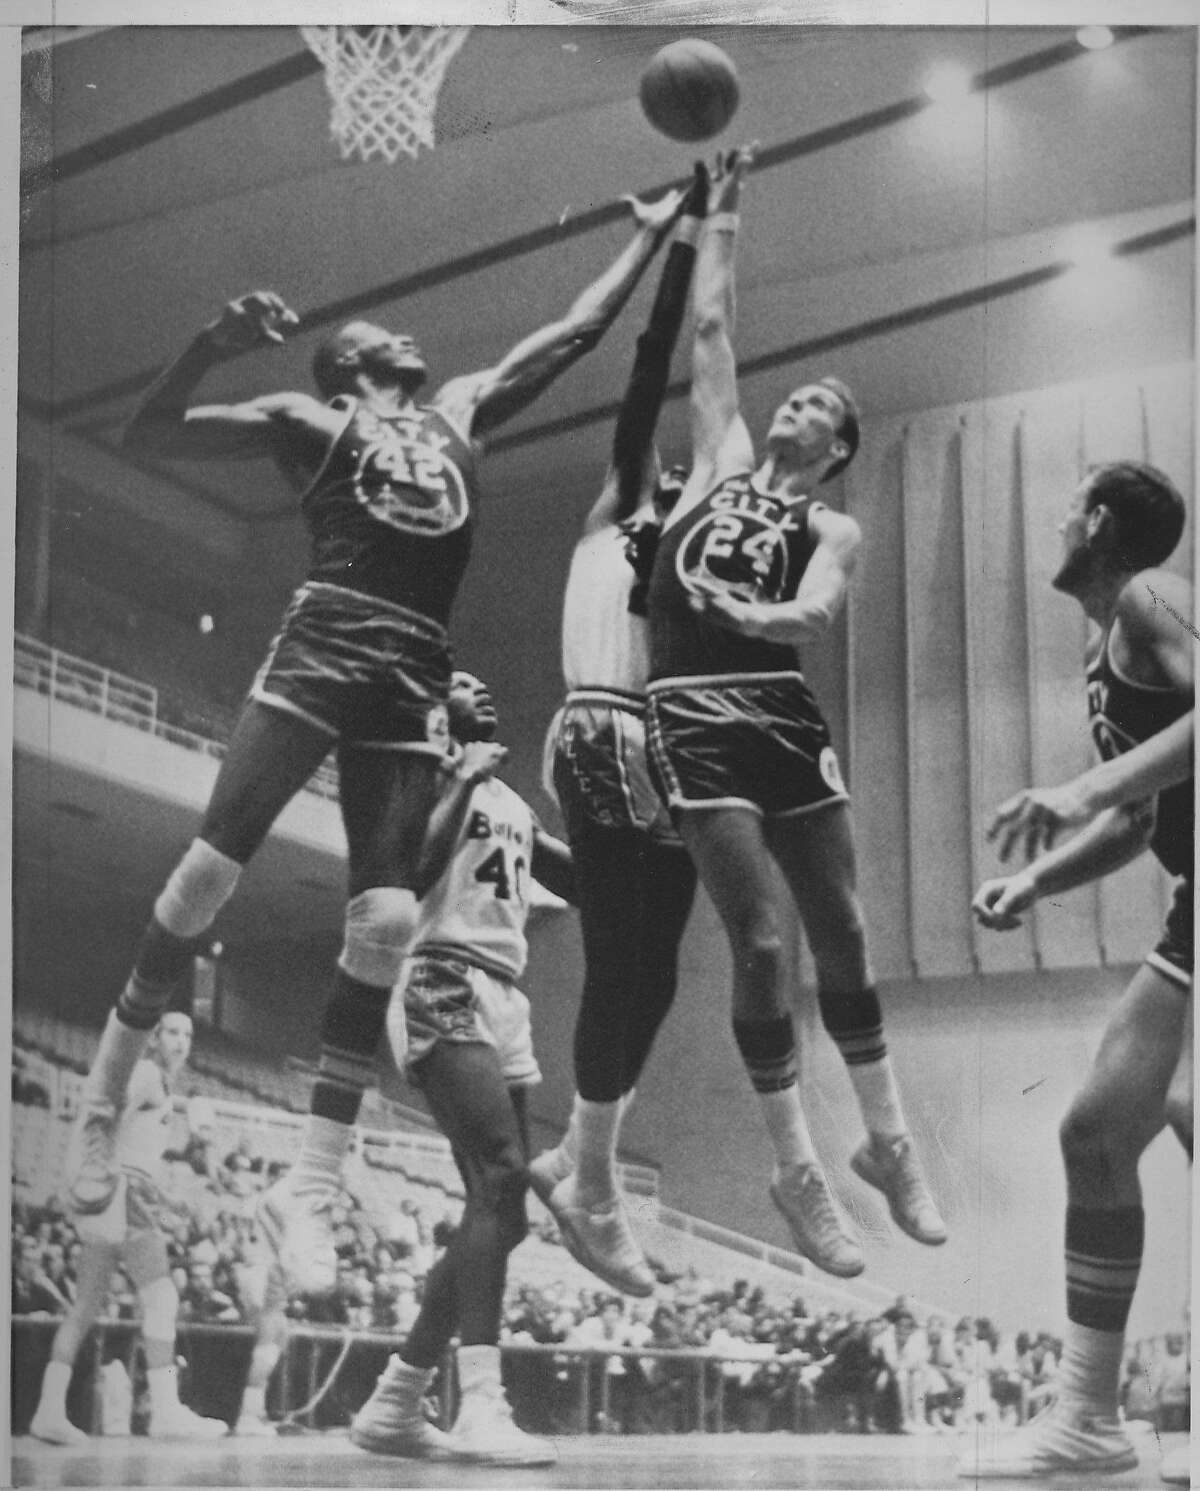 FILE-- Warriors players Nate Thurmond and Rick Barry battle for a rebound against the Baltimore Bullets, in Baltimore, MD Both Rick Barry and Nate Thurmond would be selected to start in the NBA All-Star Game that season. Photo taken Oct. 28, 1966.